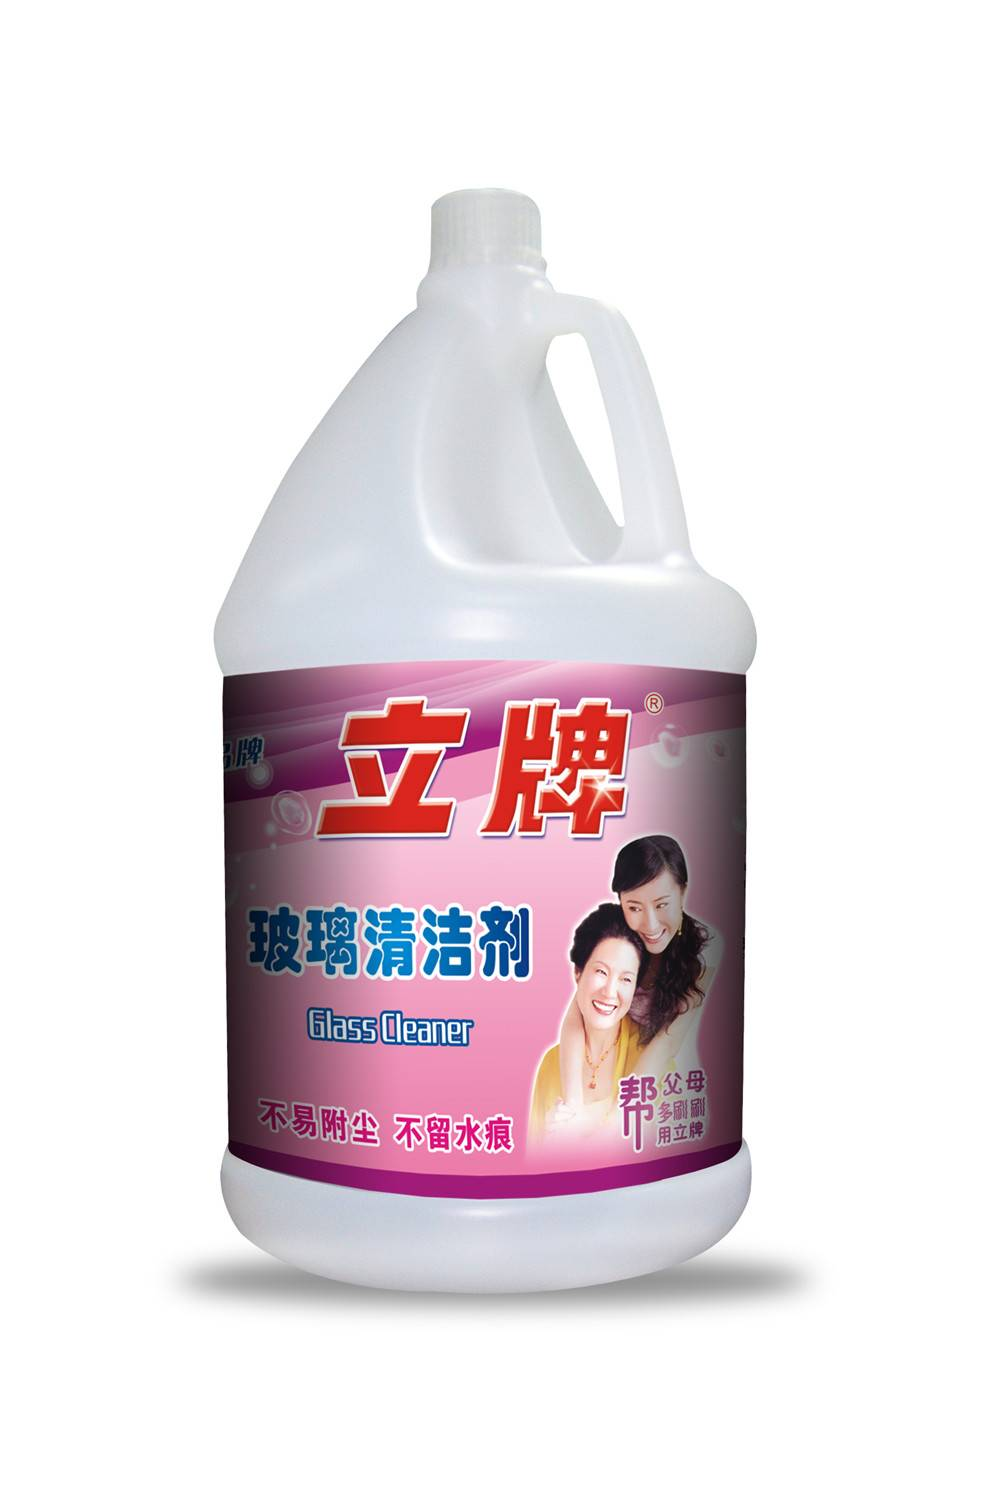 Glass Cleaner, Detergent, 3.8kg, Accepted OEM Orders, Daily detergent